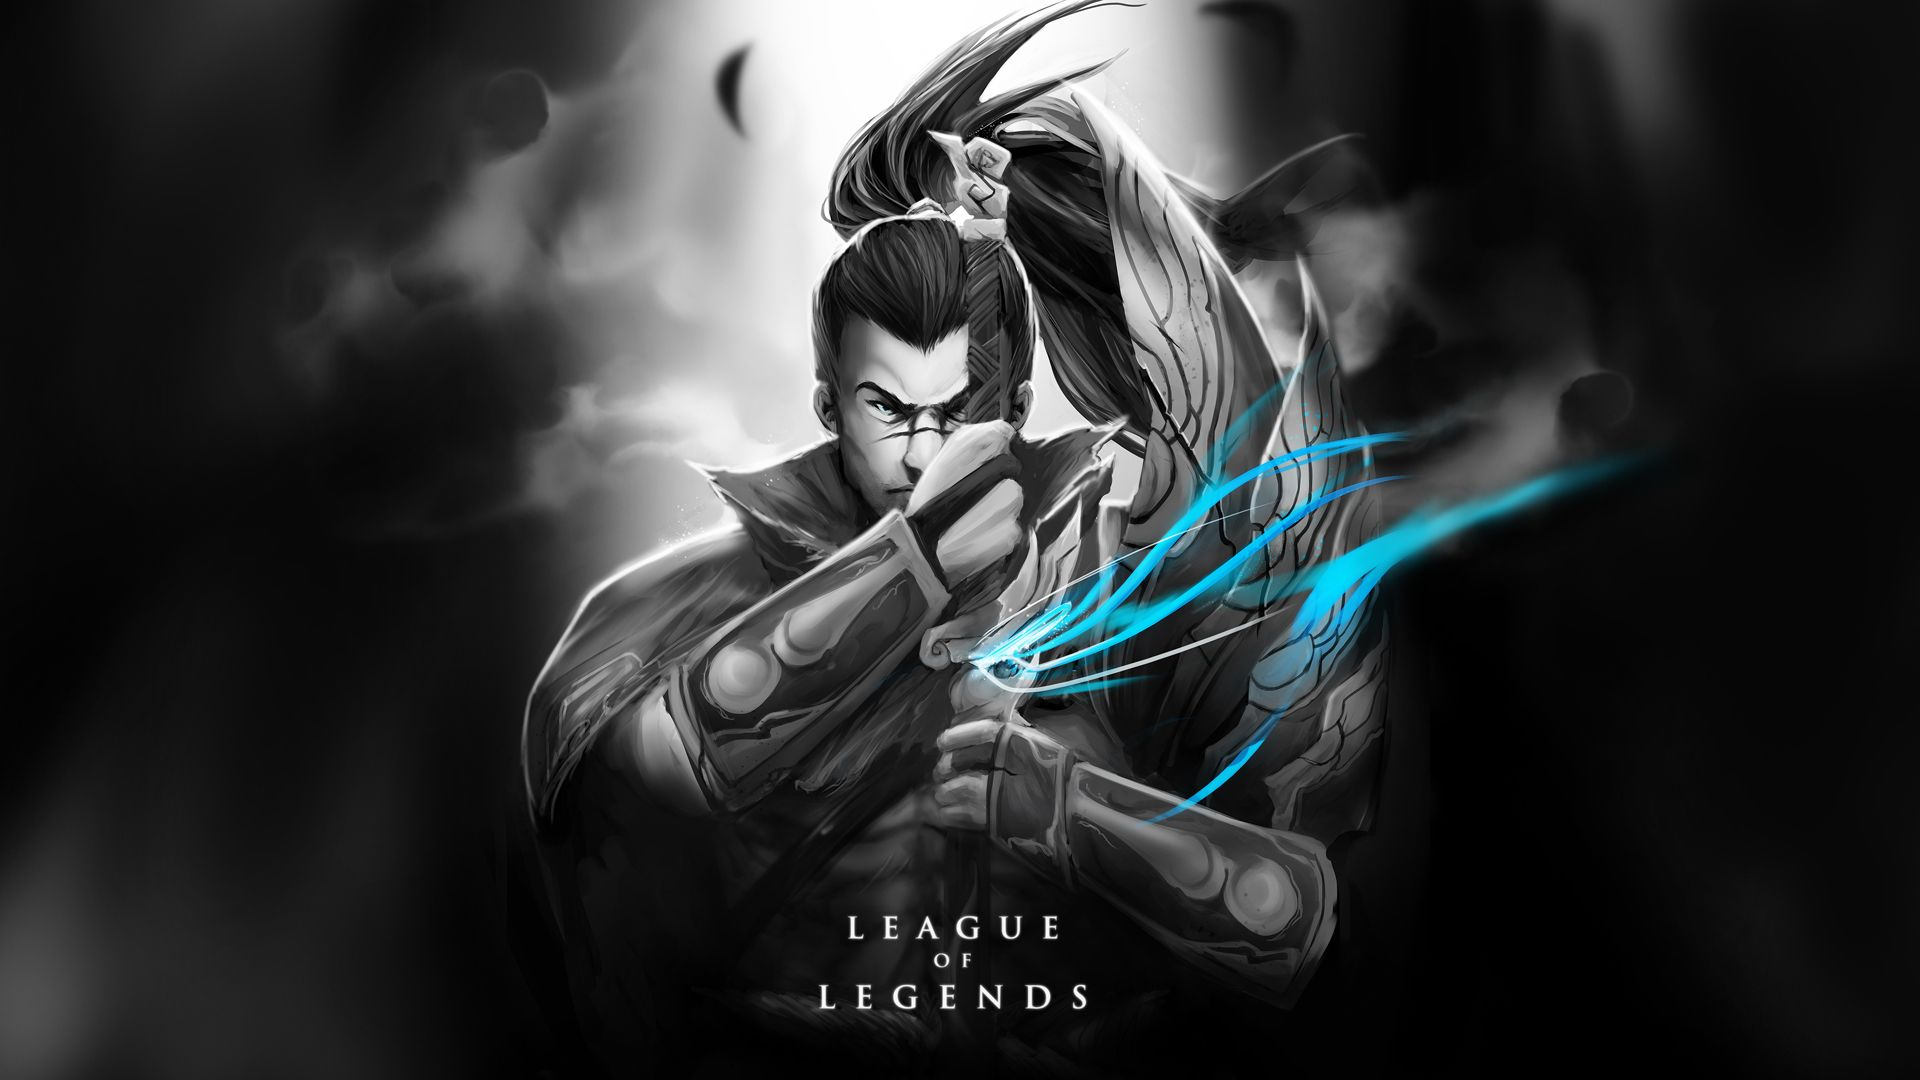 Yasuo League Of Legends Wallpapers HD 1920x1080 League